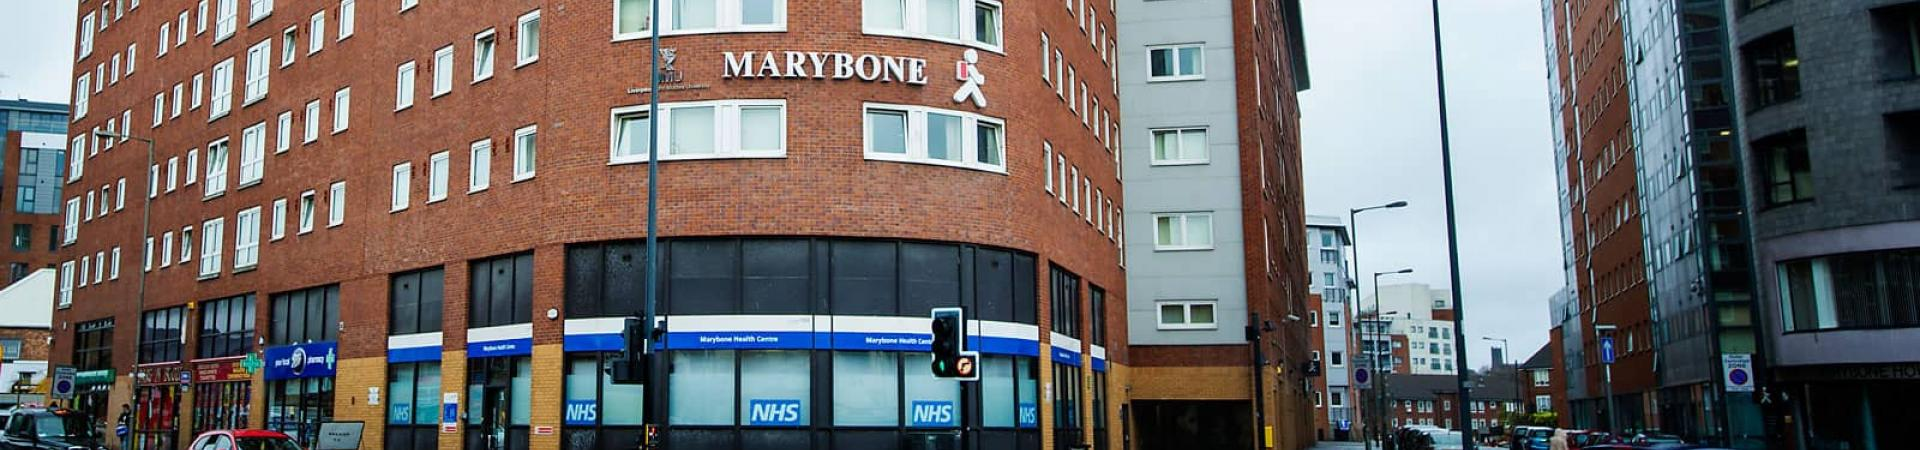 External banner image for Marybone 1, Liverpool